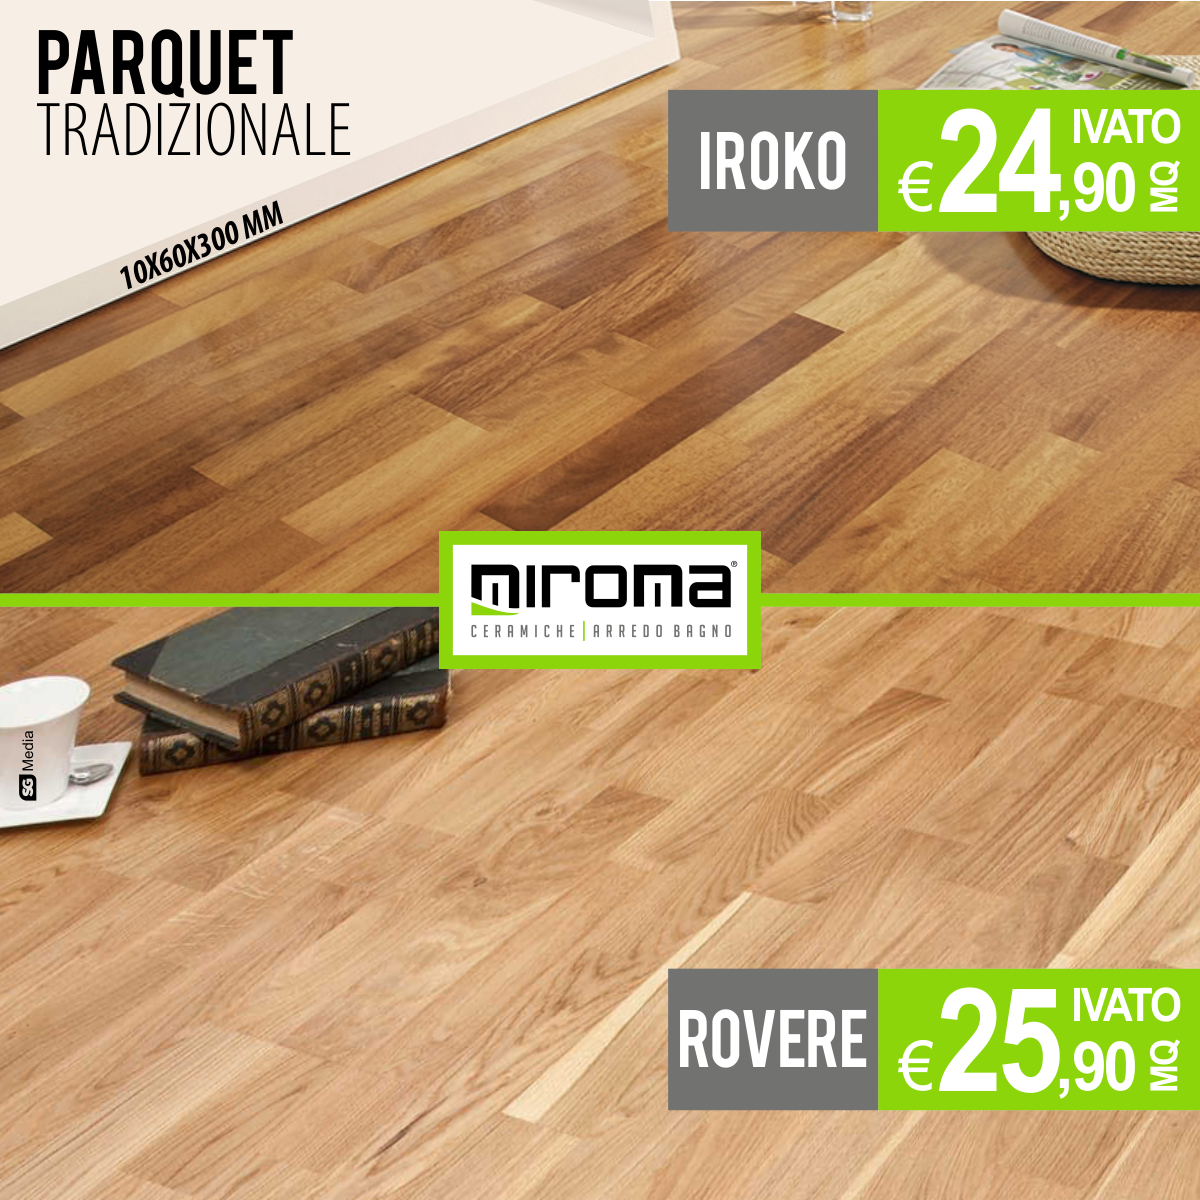 promo parquet top parquet massif bouleau premier rustique x mm brut promo with promo parquet. Black Bedroom Furniture Sets. Home Design Ideas